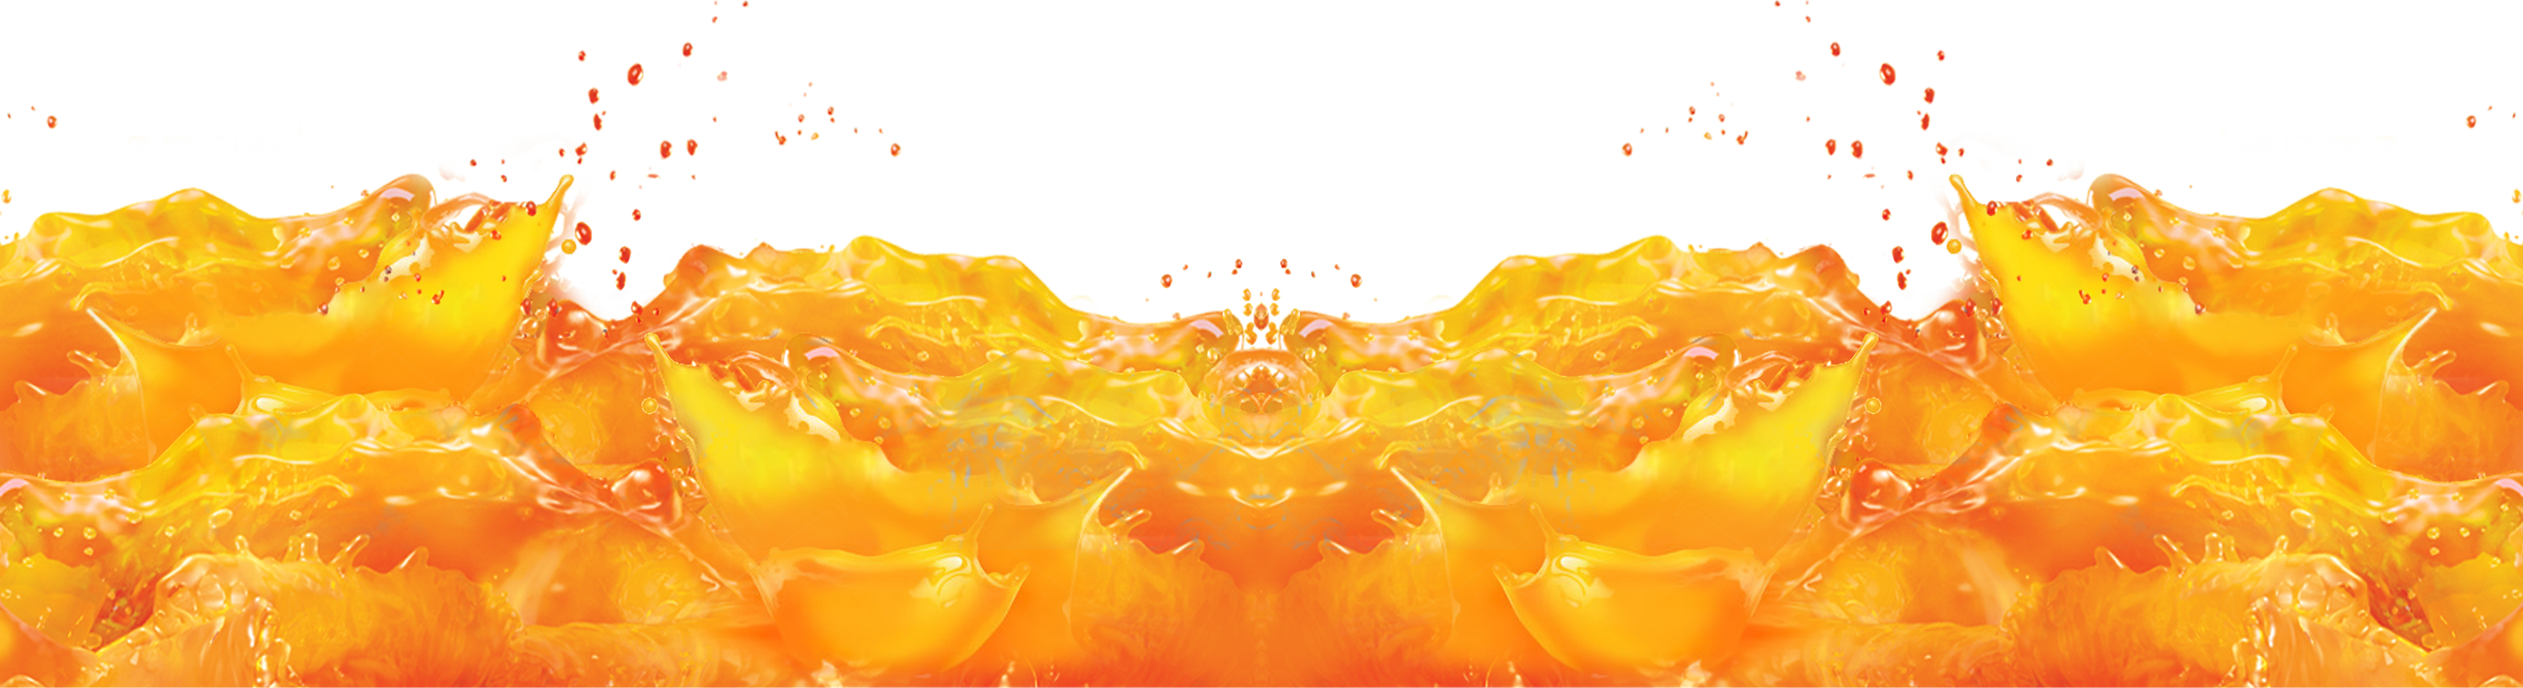 22x6 gkr orange juice double mirrored.png